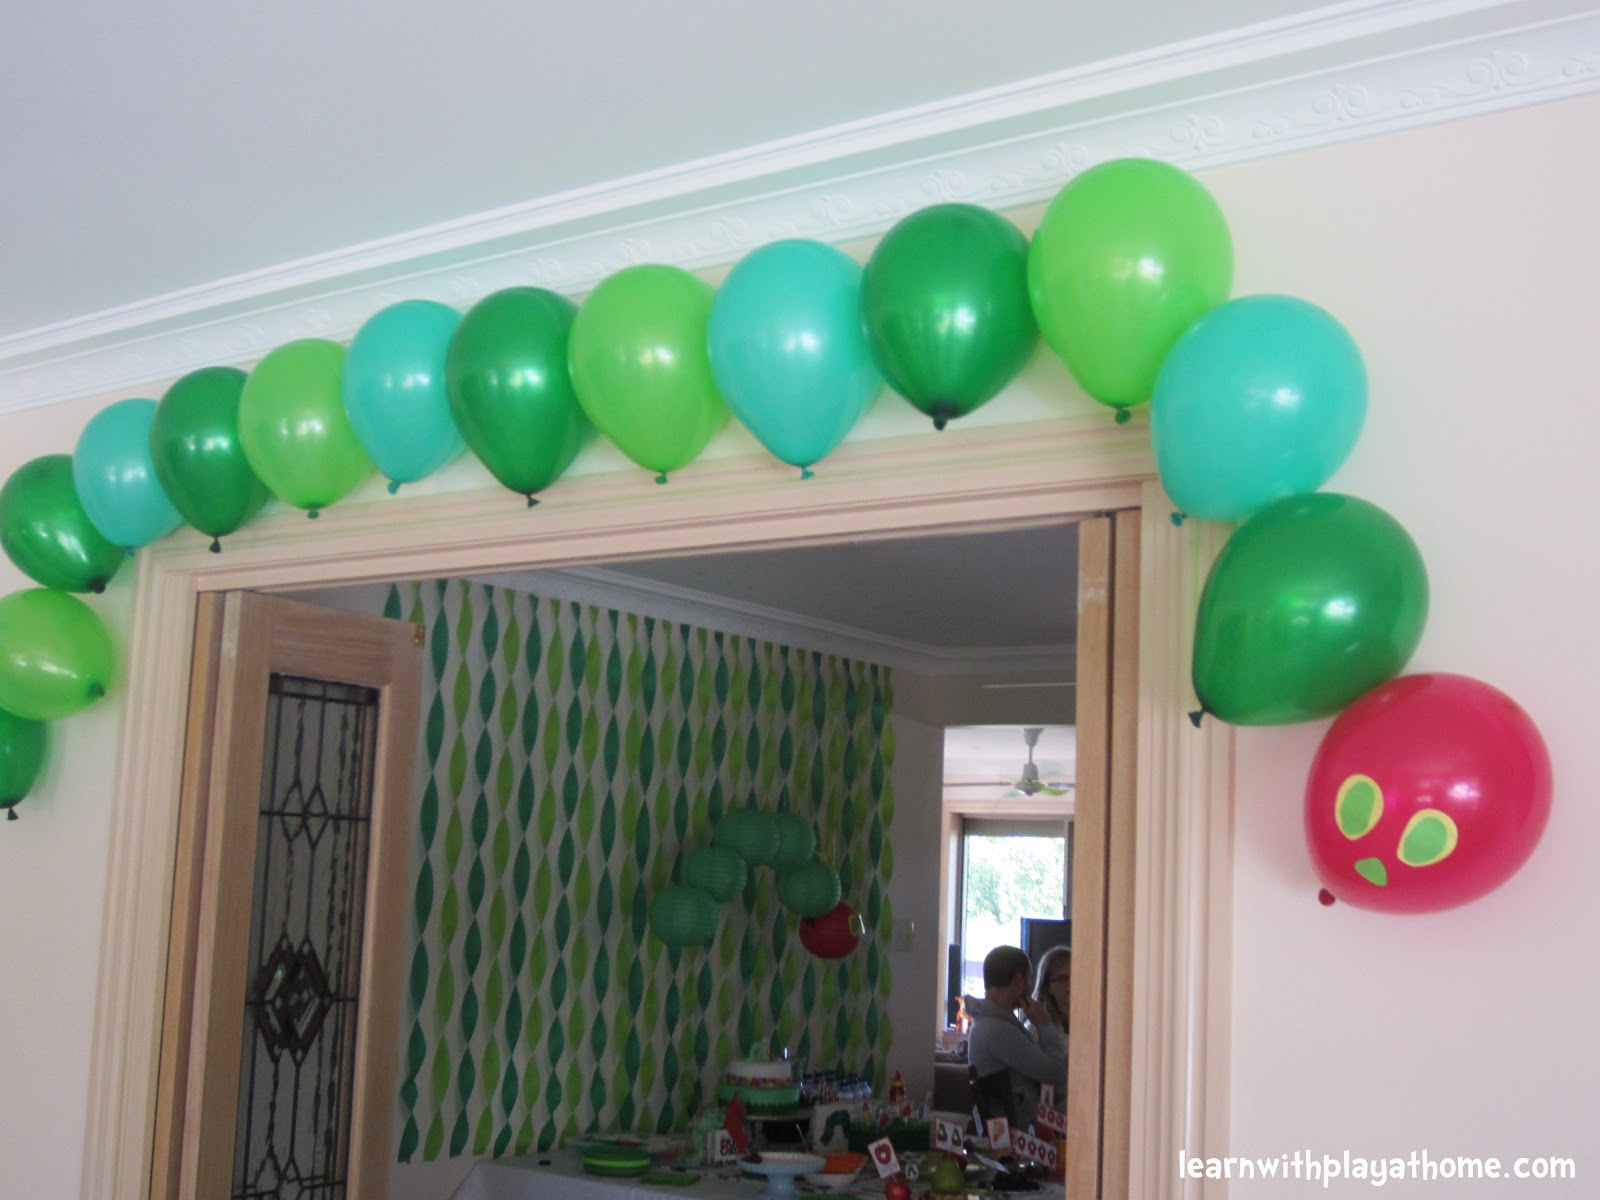 Learn with play at home diy party decorations Balloon decoration for birthday at home